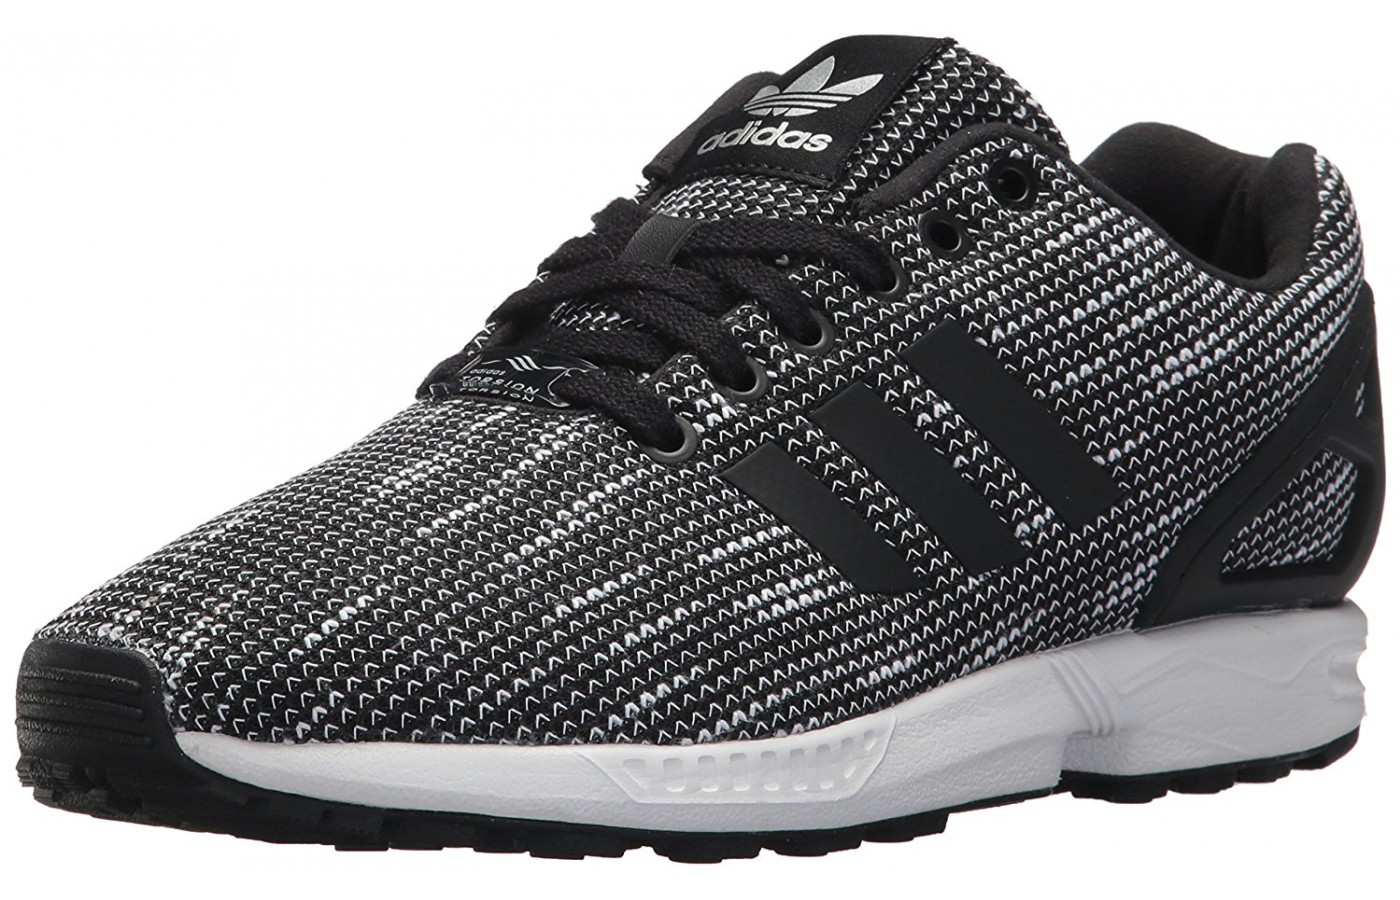 c5f81c82504e Adidas ZX Flux Reviewed   Tested for Performance in 2019